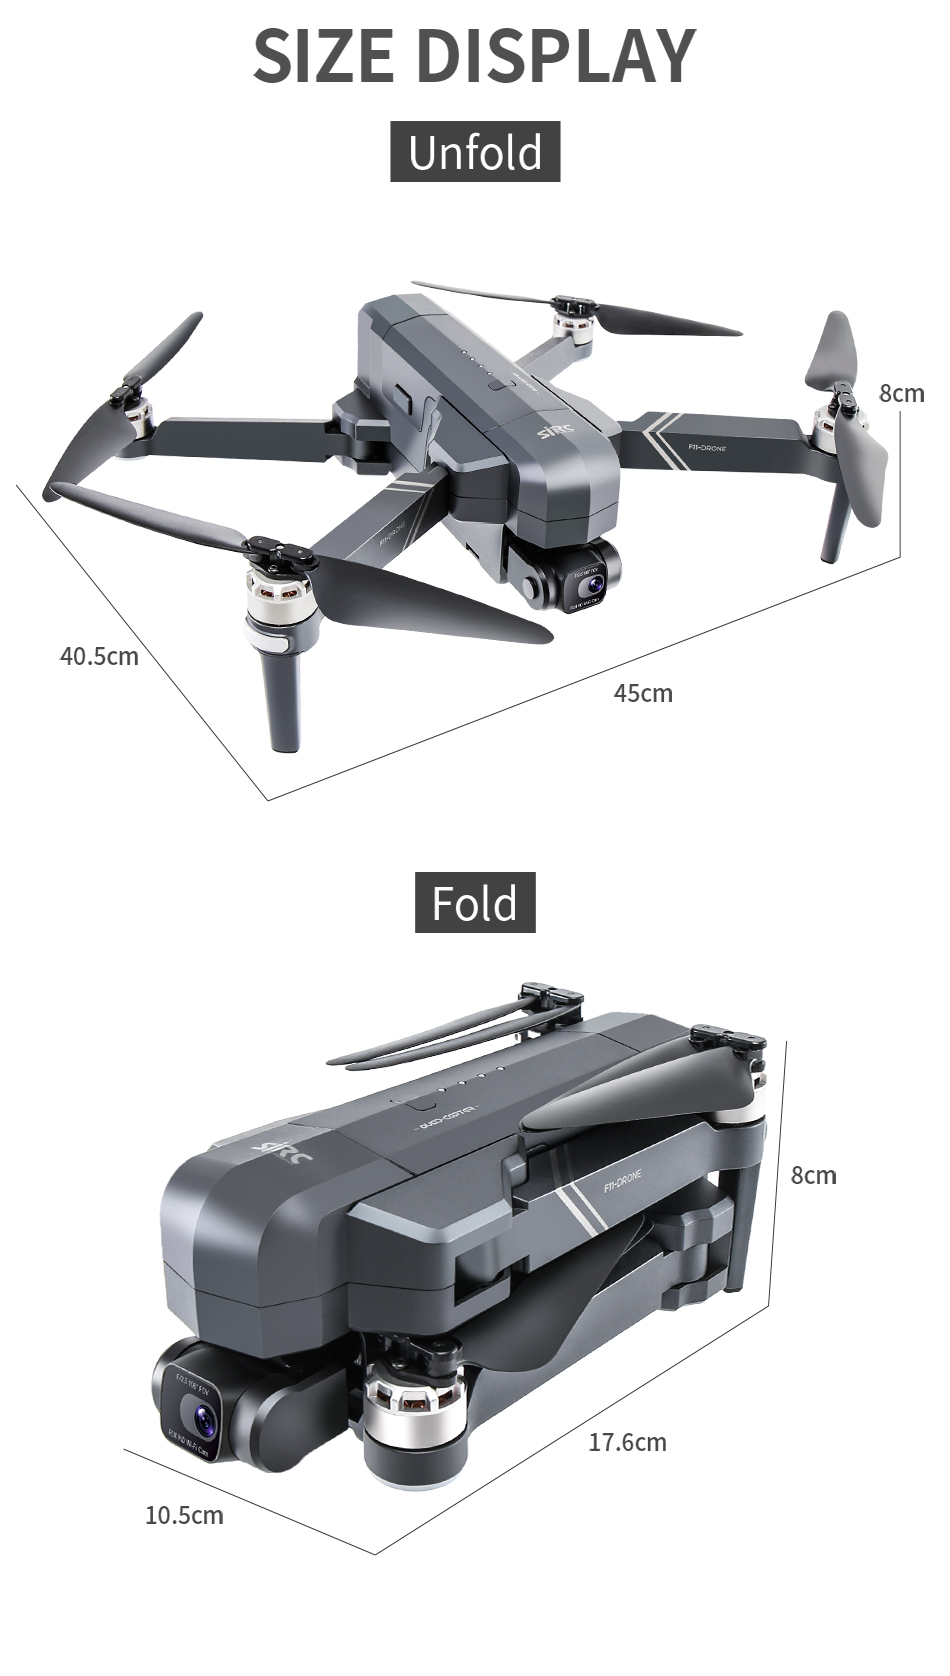 H2e6bf638367b4eeea44f010ab5499194z - SJRC F11 Pro 4K F11s Pro 2.5K Camera Drone GPS 5G FPV HD 2 Axis Stabilized Gimbal EIS Professional Brushless Quadcopter RC Dron